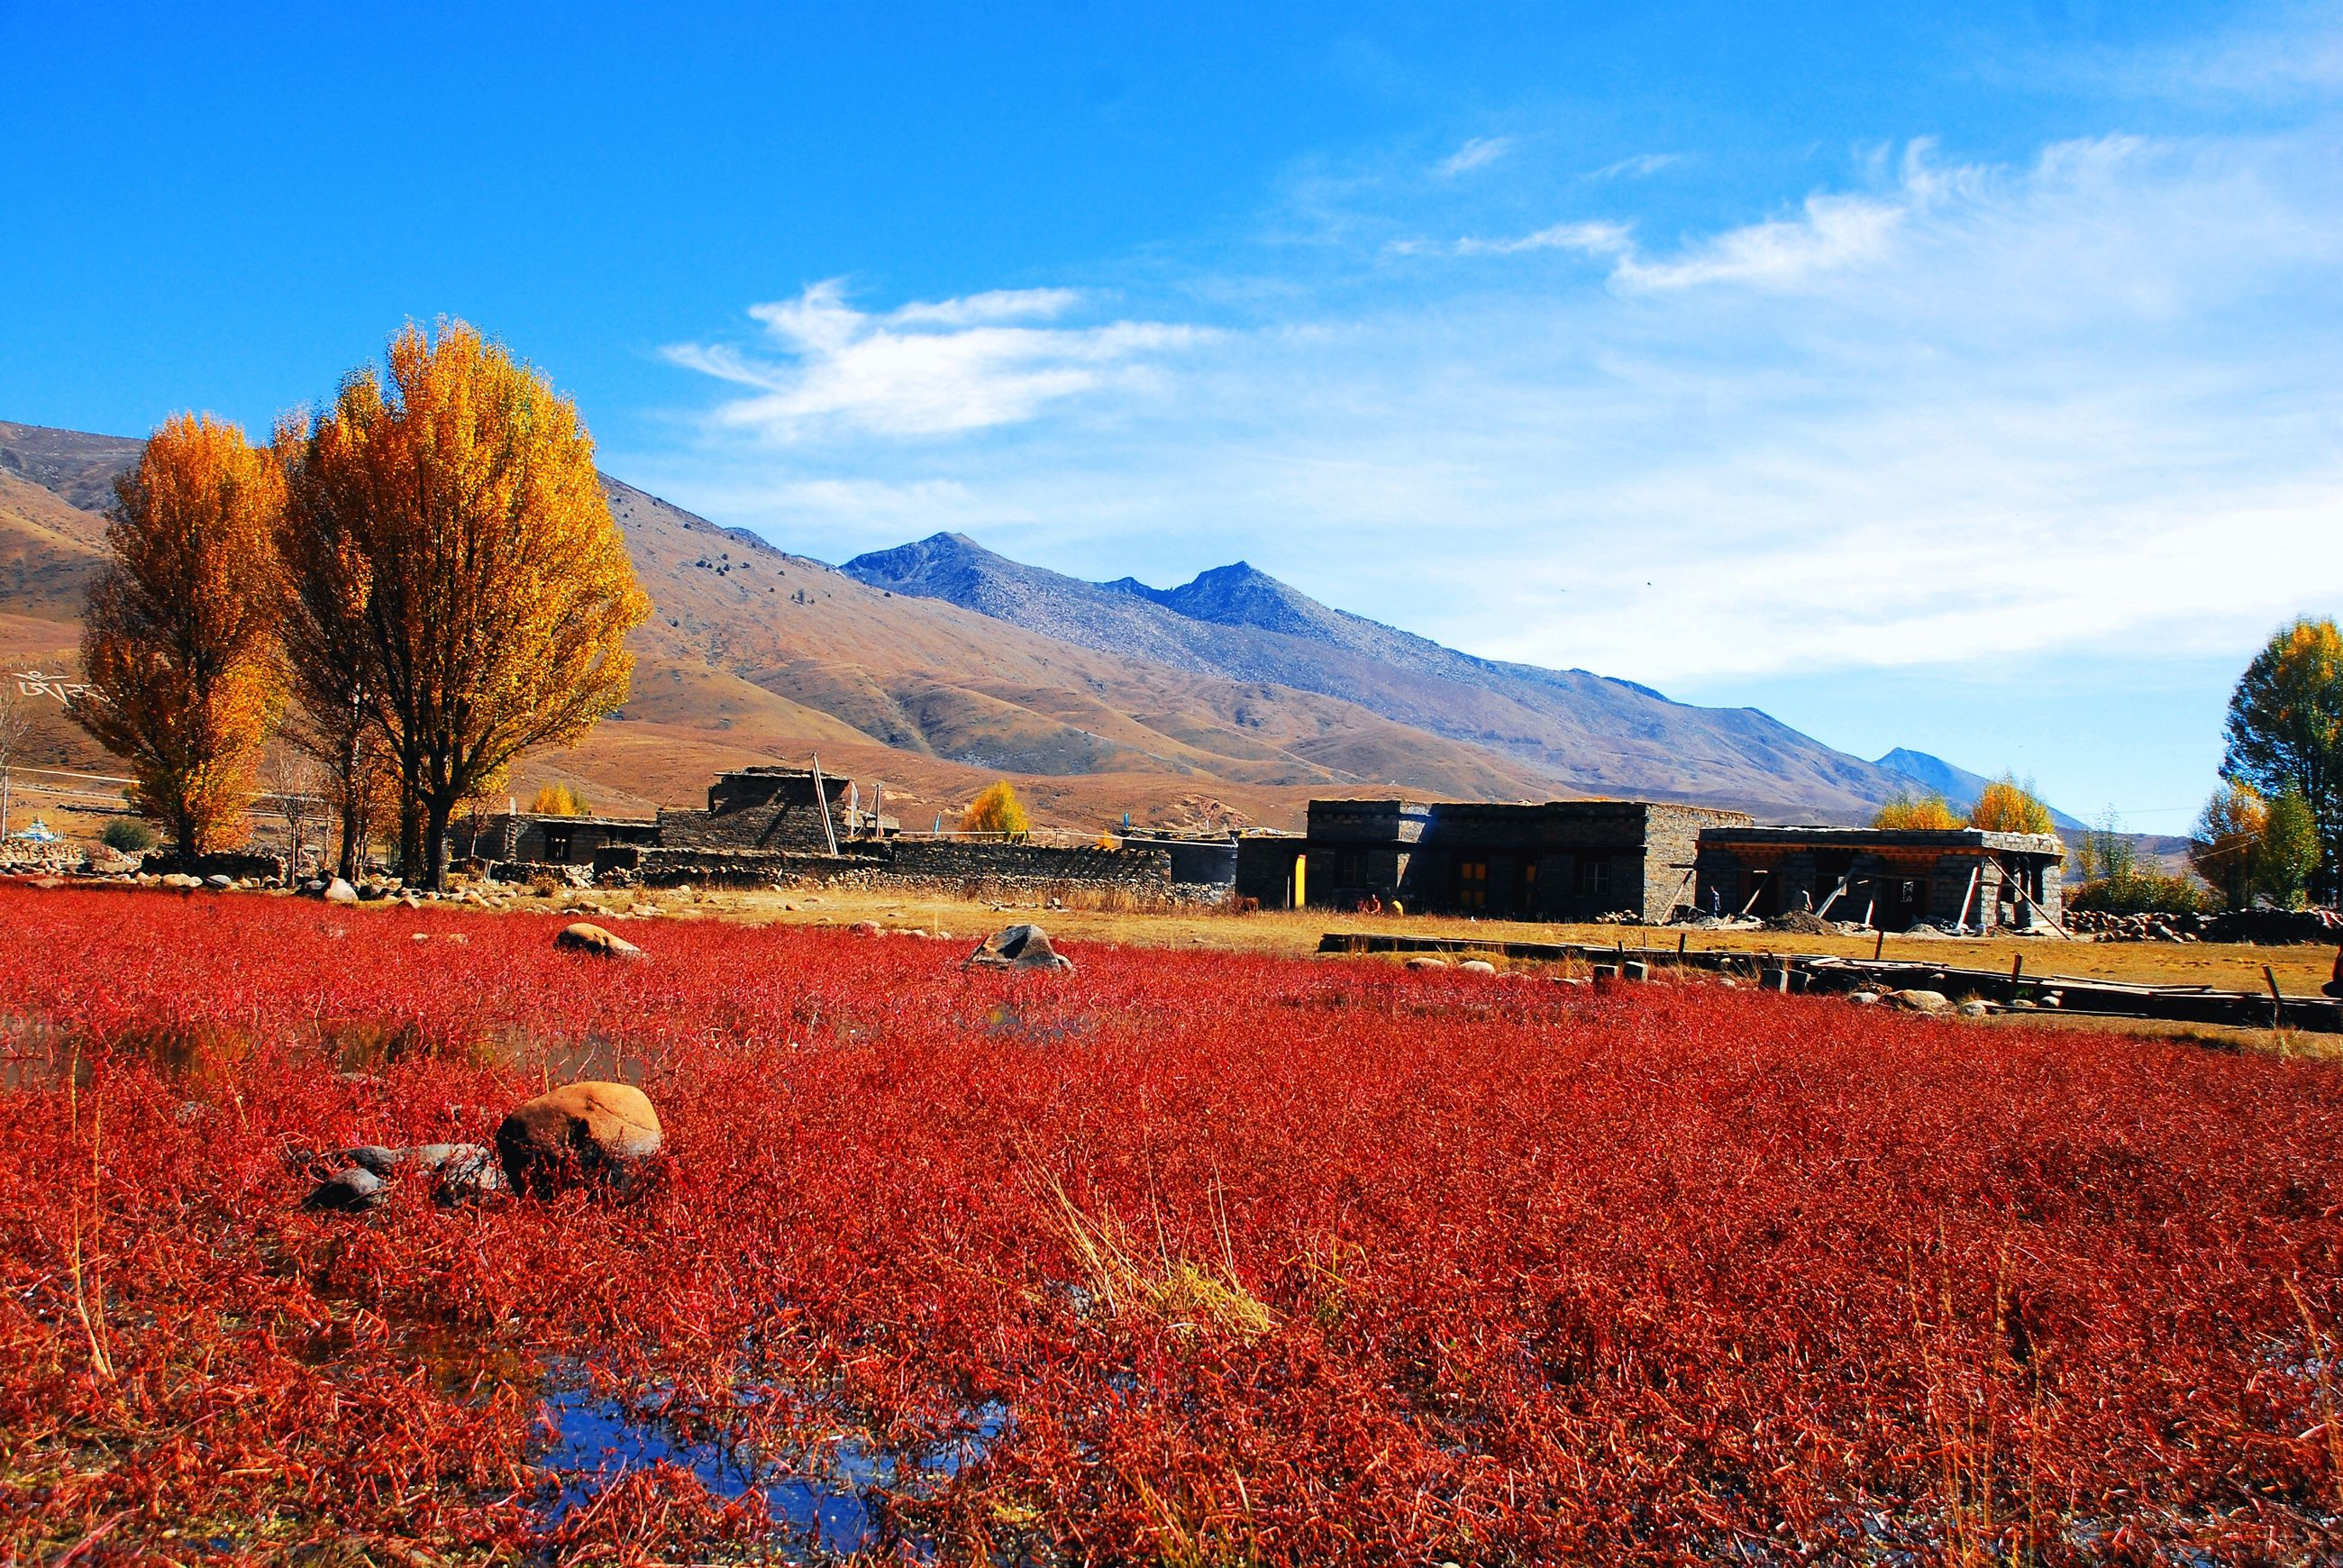 mountain, tree, sky, landscape, beauty in nature, tranquil scene, tranquility, mountain range, scenics, nature, season, blue, flower, house, autumn, growth, red, field, built structure, snow